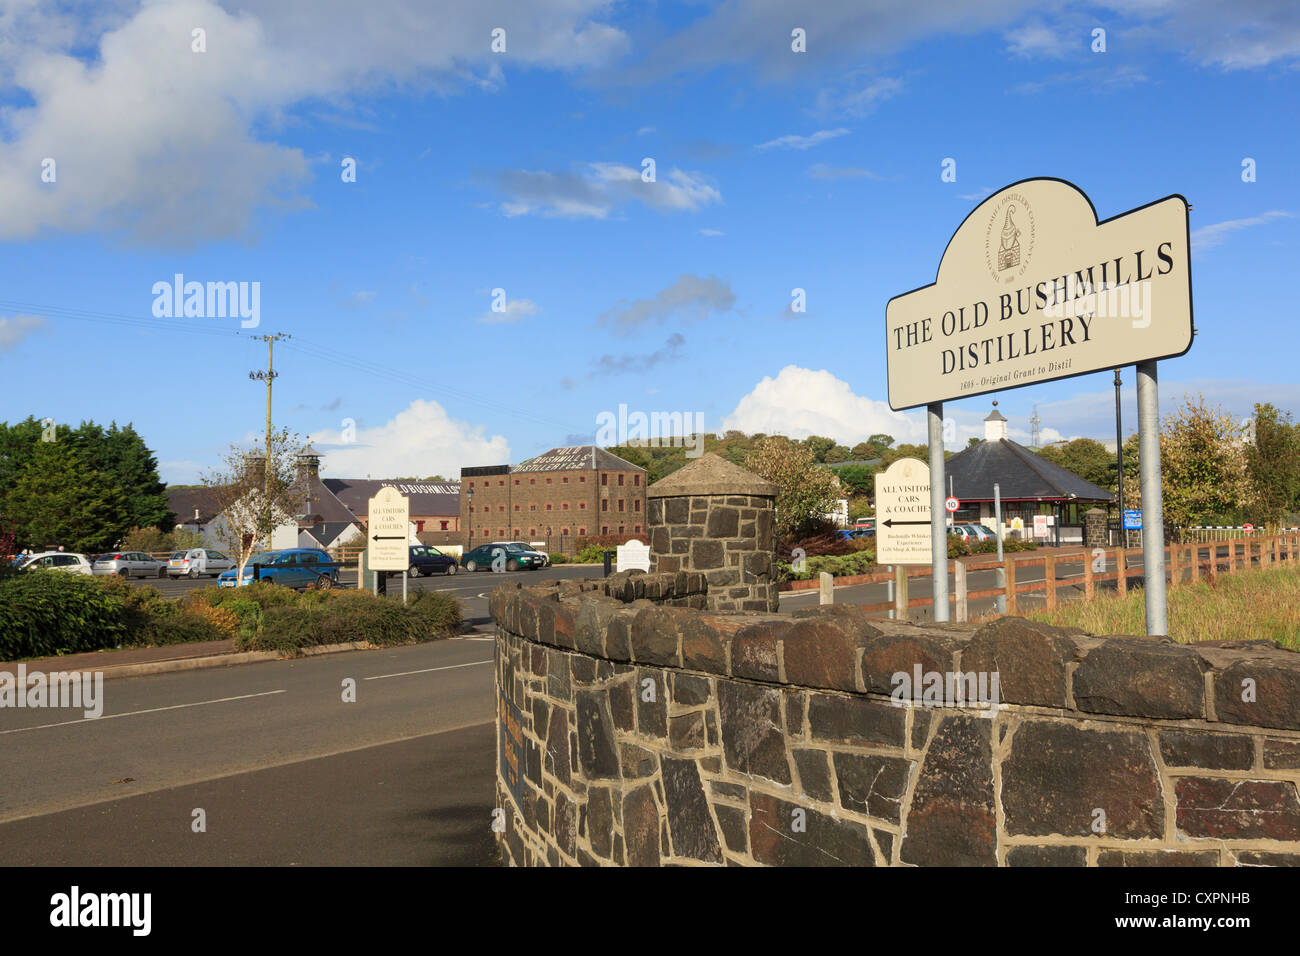 Sign at entrance to Old Bushmills Distillery Co Ltd distillers of Irish whiskey in Bushmills, Co Antrim, Northern - Stock Image